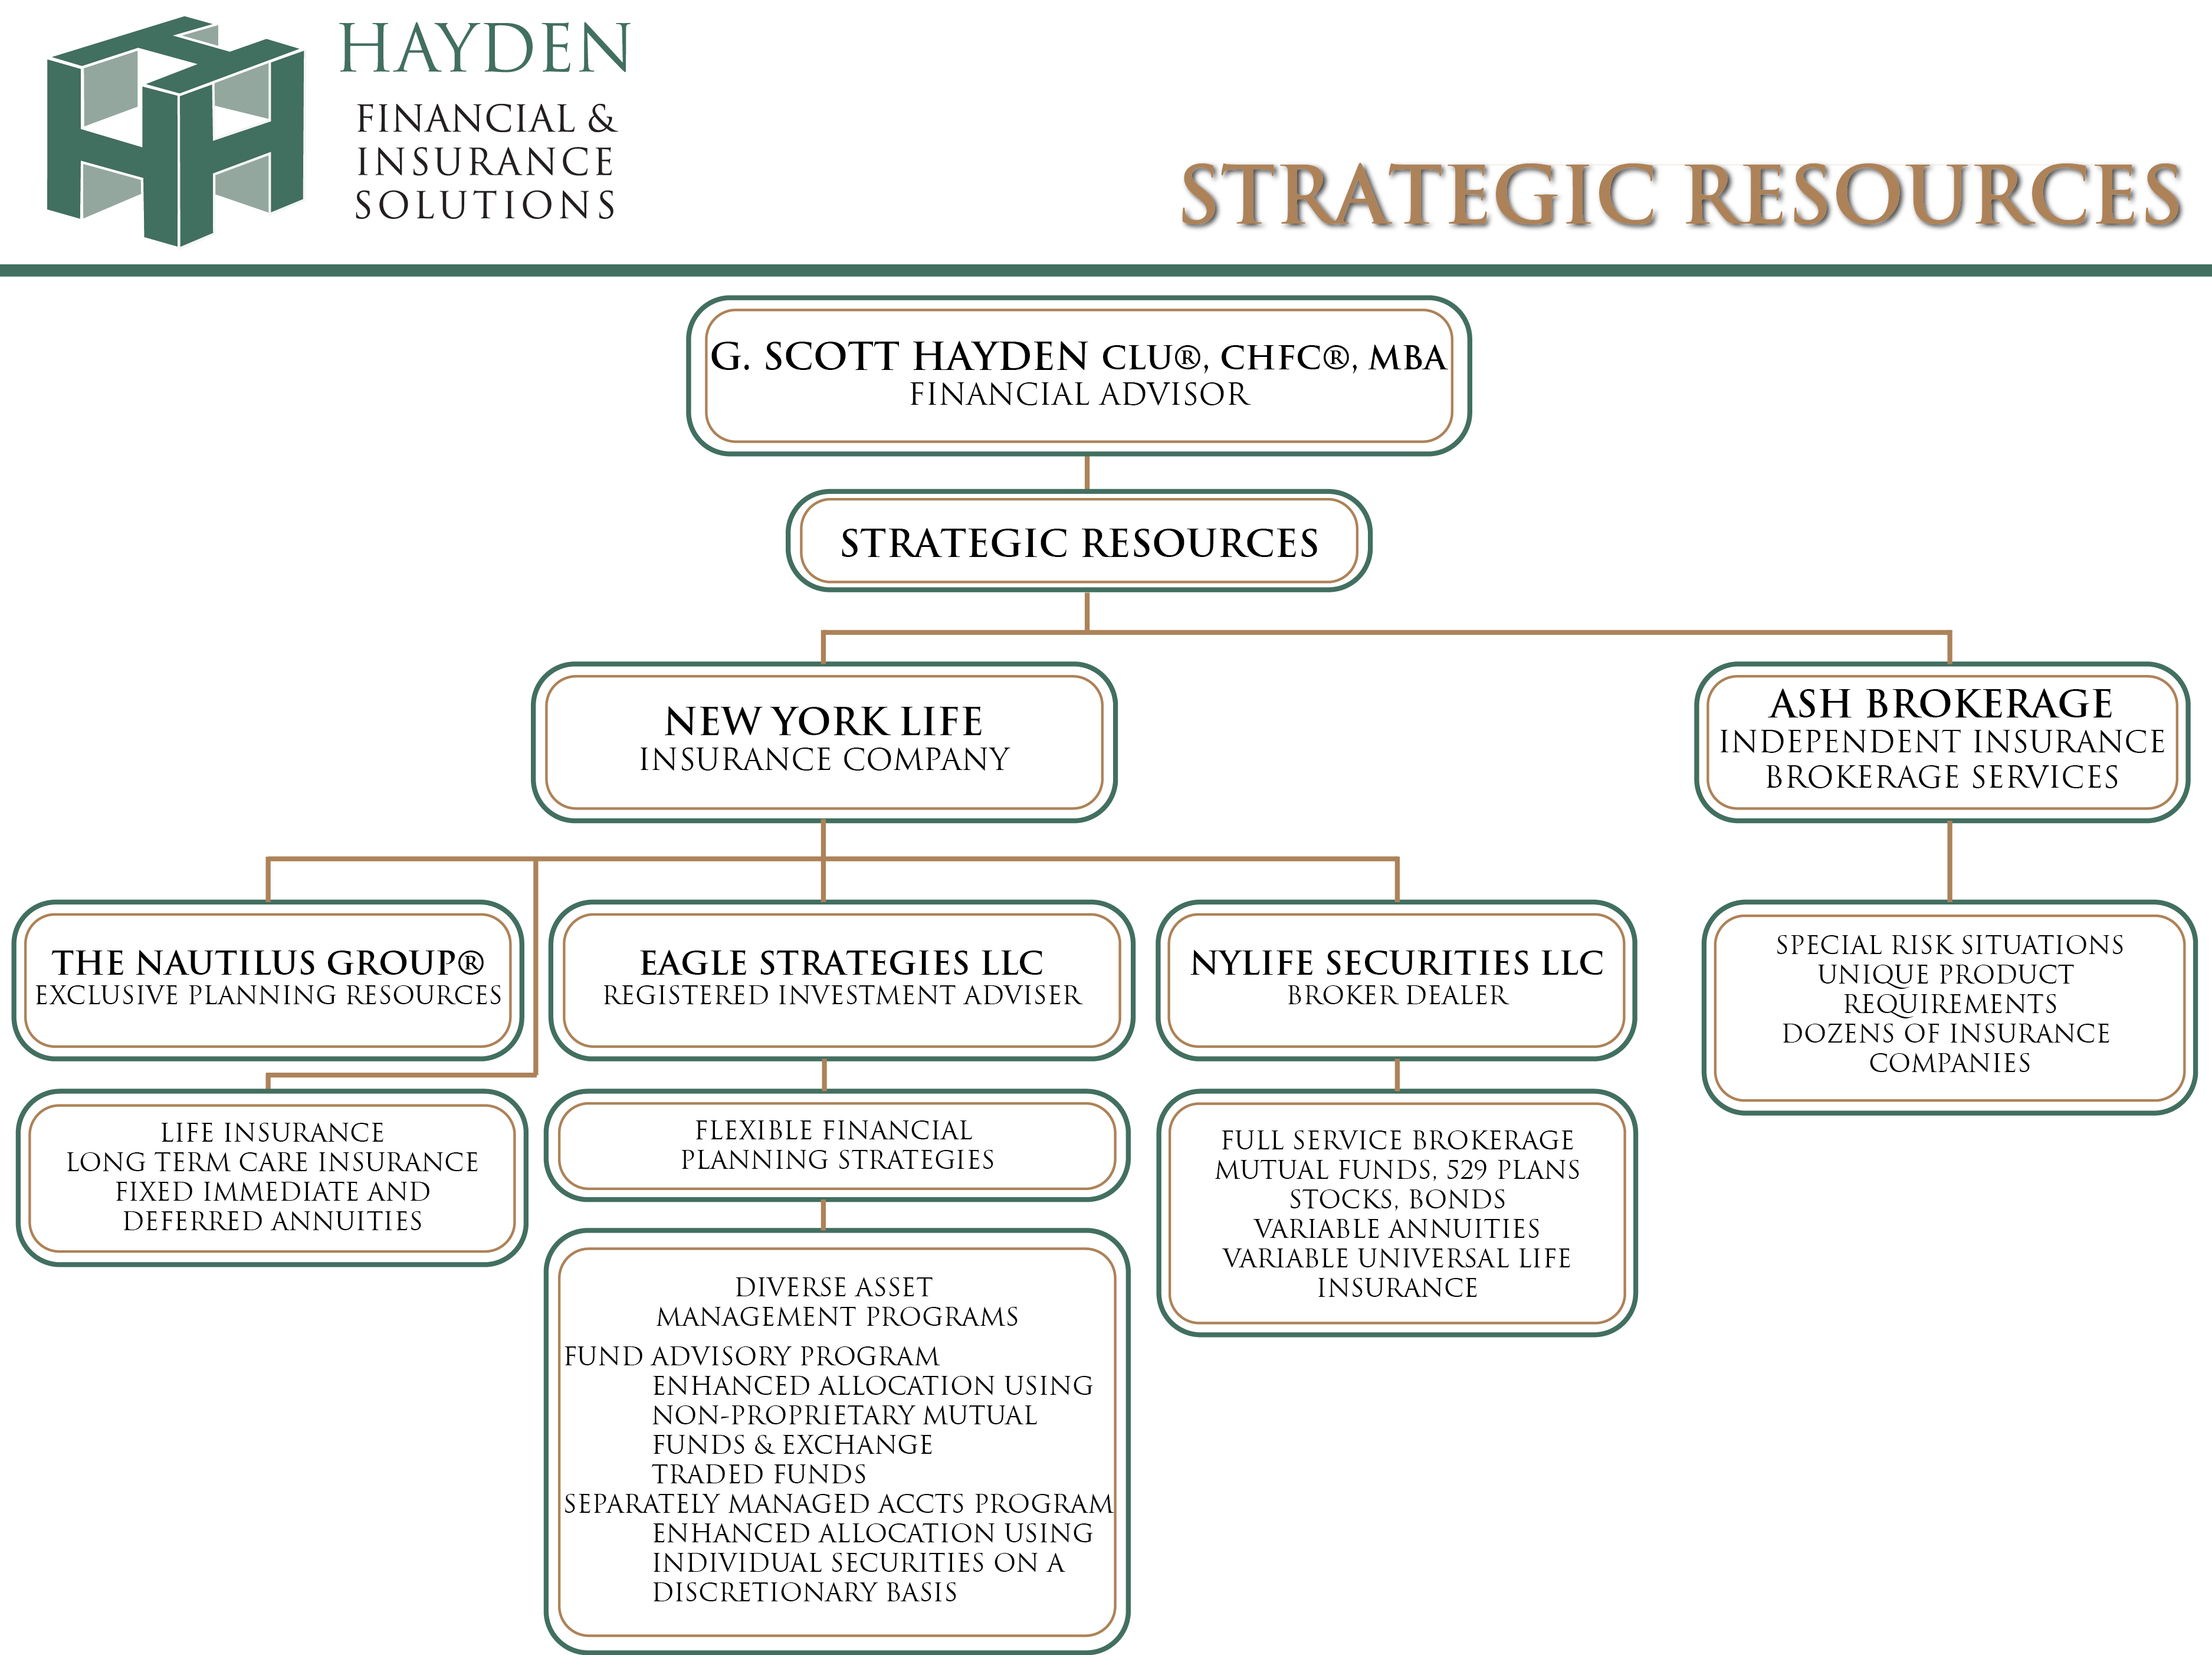 Our Organizational Resources Chart : Hayden Financial ...